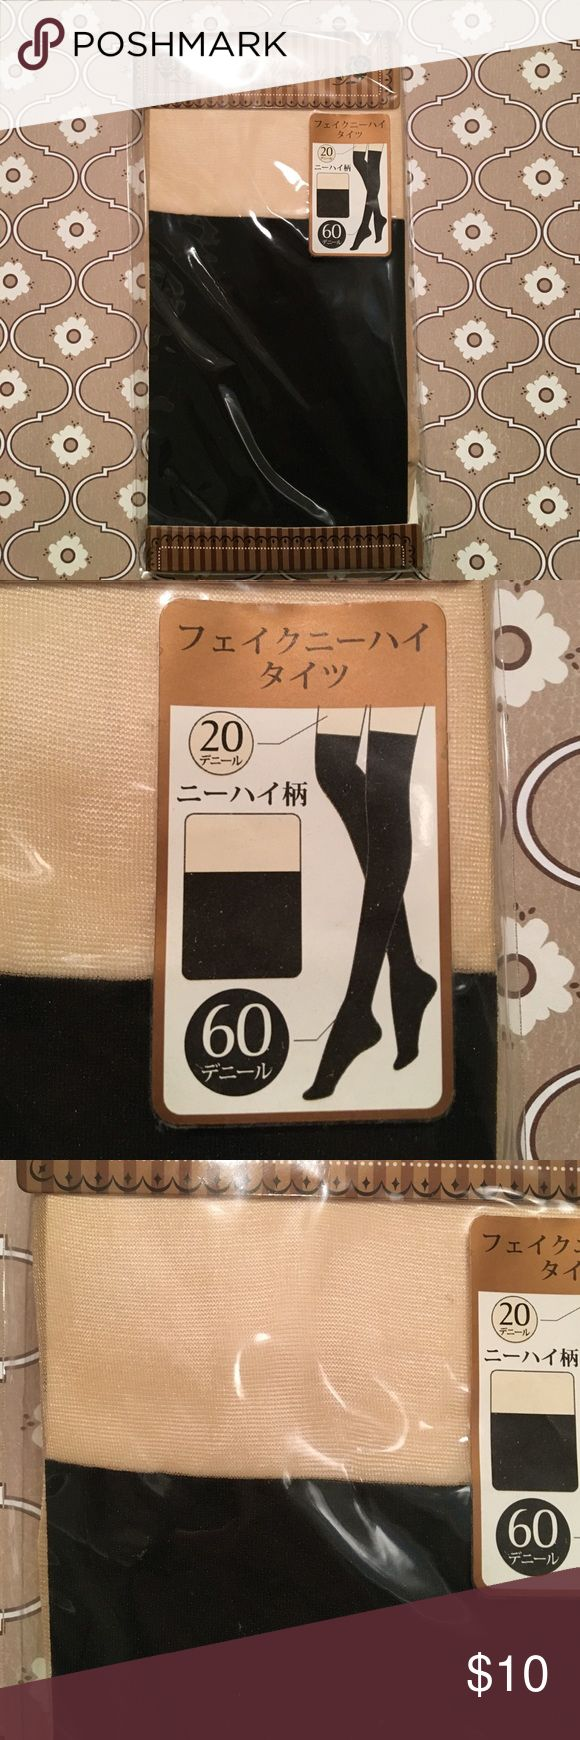 """Faux knee-high black tights Faux knee-high S•P Collection by Studio P.O.A.C. Black tights. Opaque black (60 denier) to above the knee, then a cream-colored thigh and top (20 denier) to give the illusion of bare skin (if you are pale). Hip: 85-98 cm (33-38 in.). Height: 150-165 cm (4'11"""" - 5'5""""). Originally bought in Japan, so think smaller sizing. New, never opened. Made of nylon & polyurethane. Washing directions (as listed on package): Hand wash in water no more than 30 C / 86 F, do not…"""